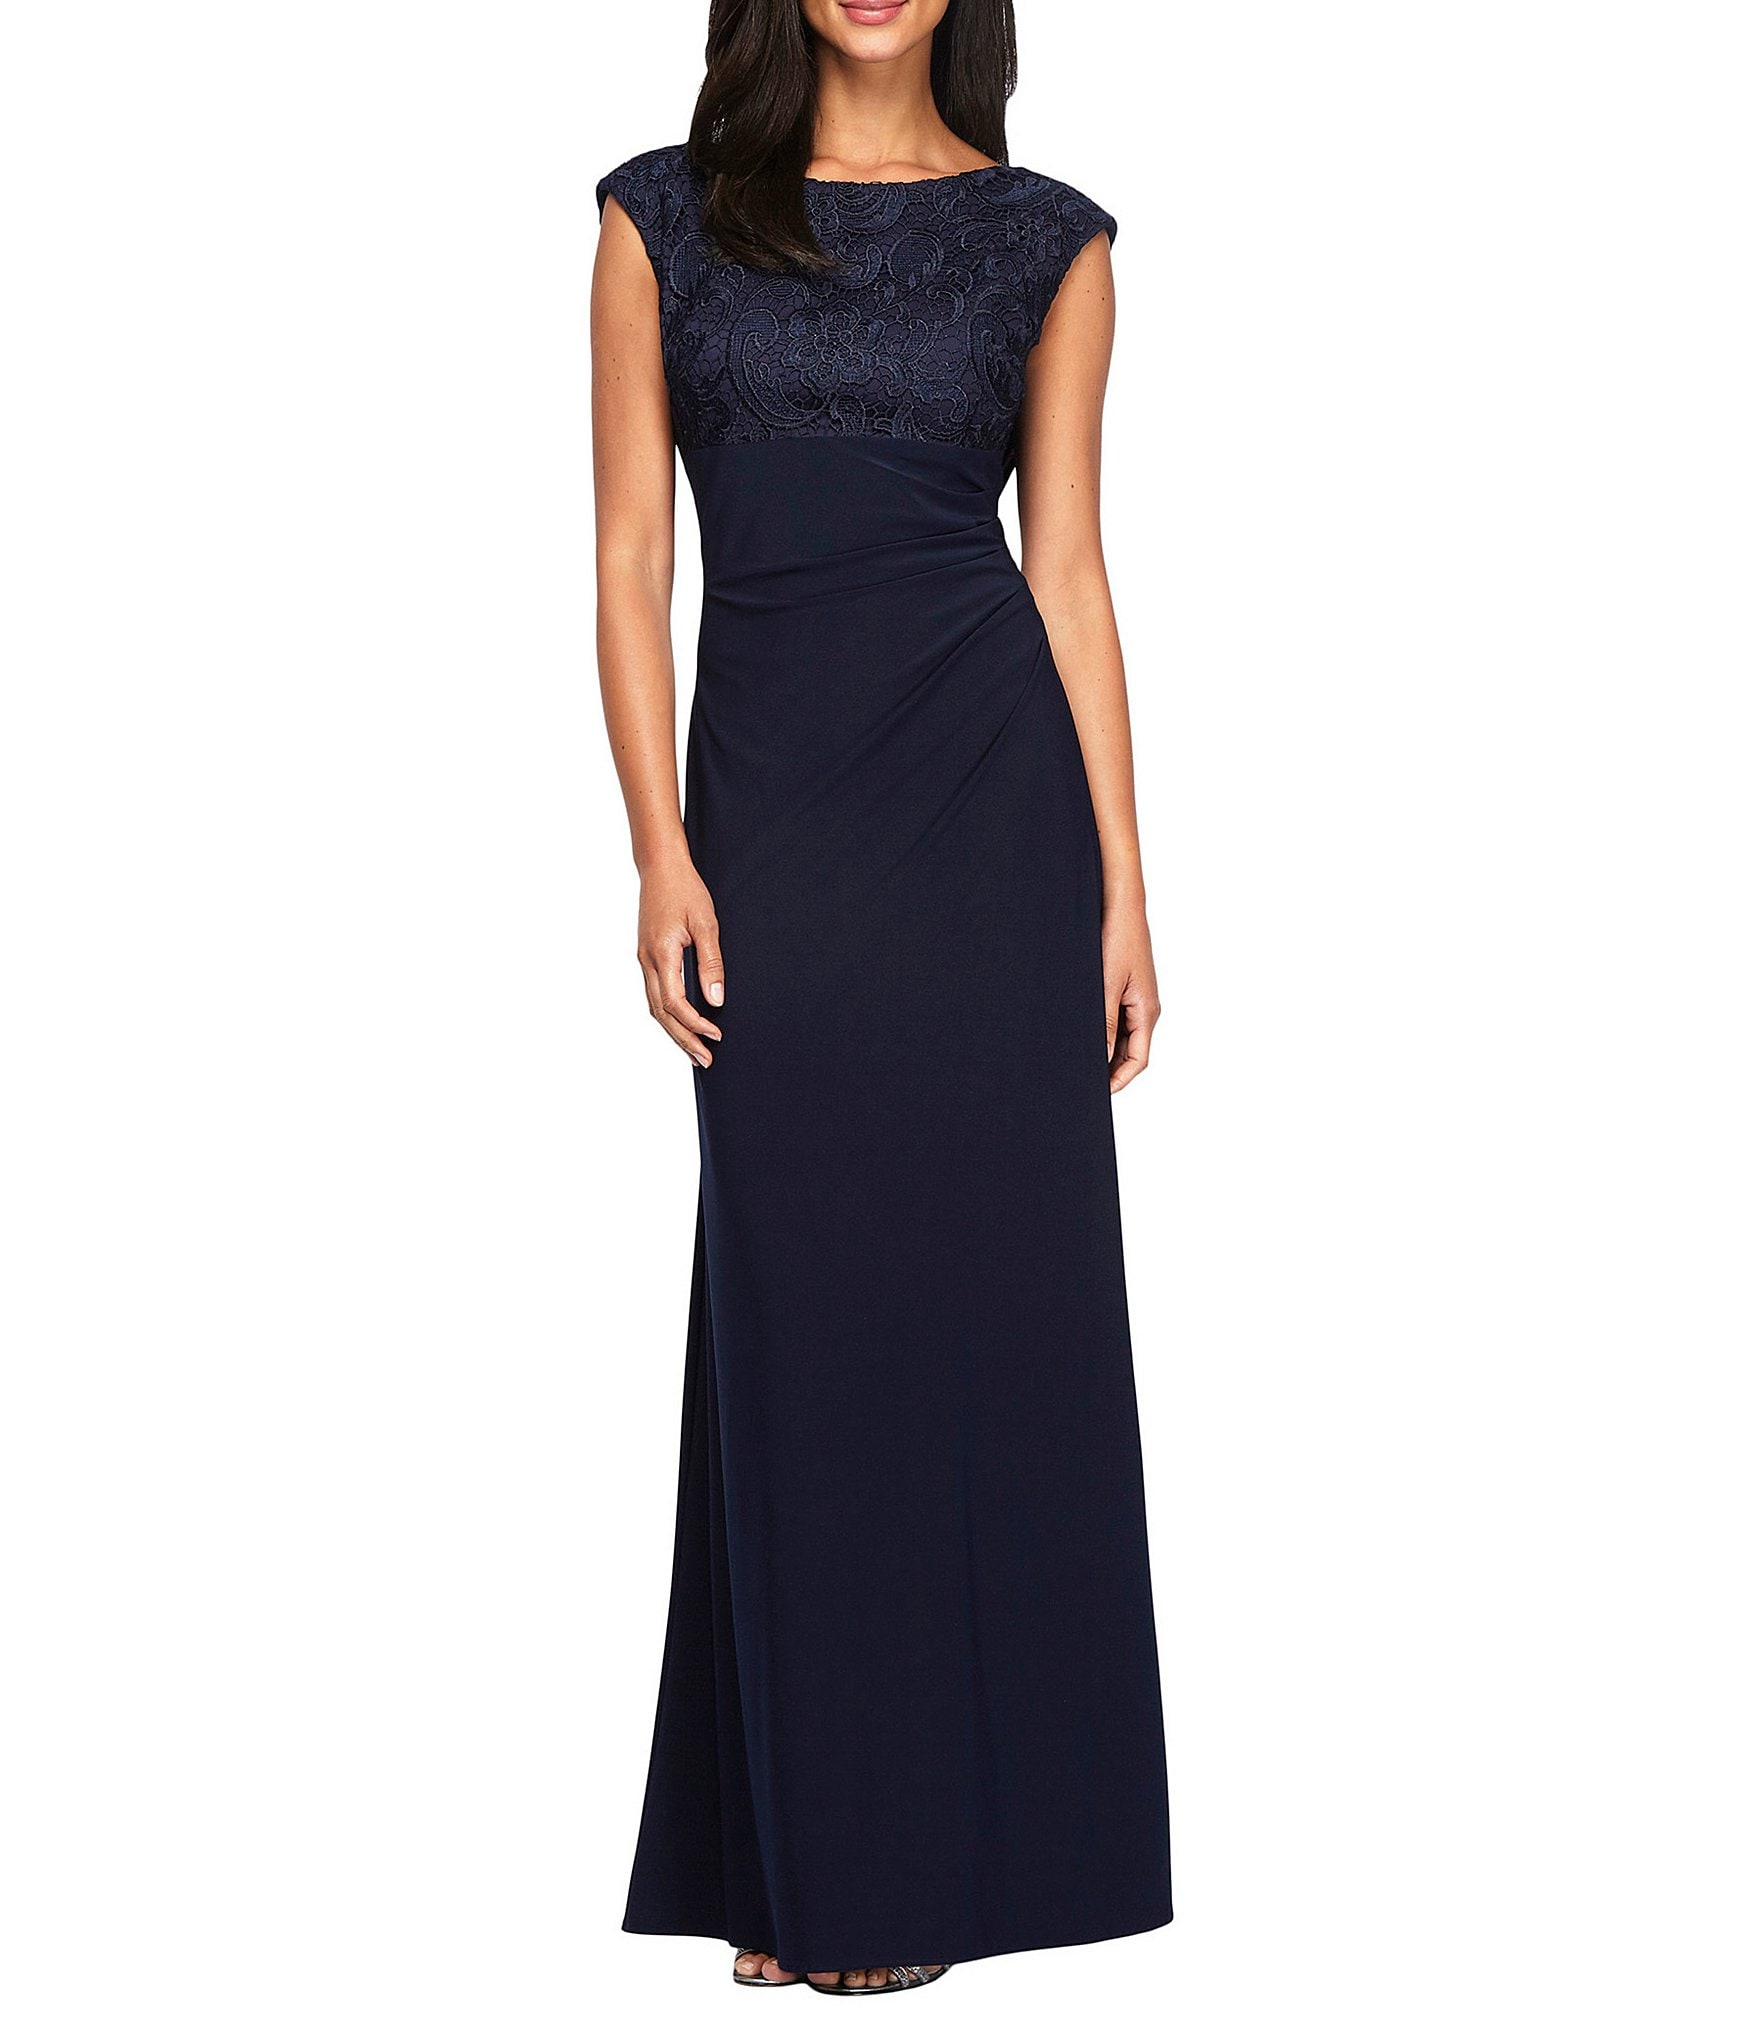 2 in 1 evening dress at dillards